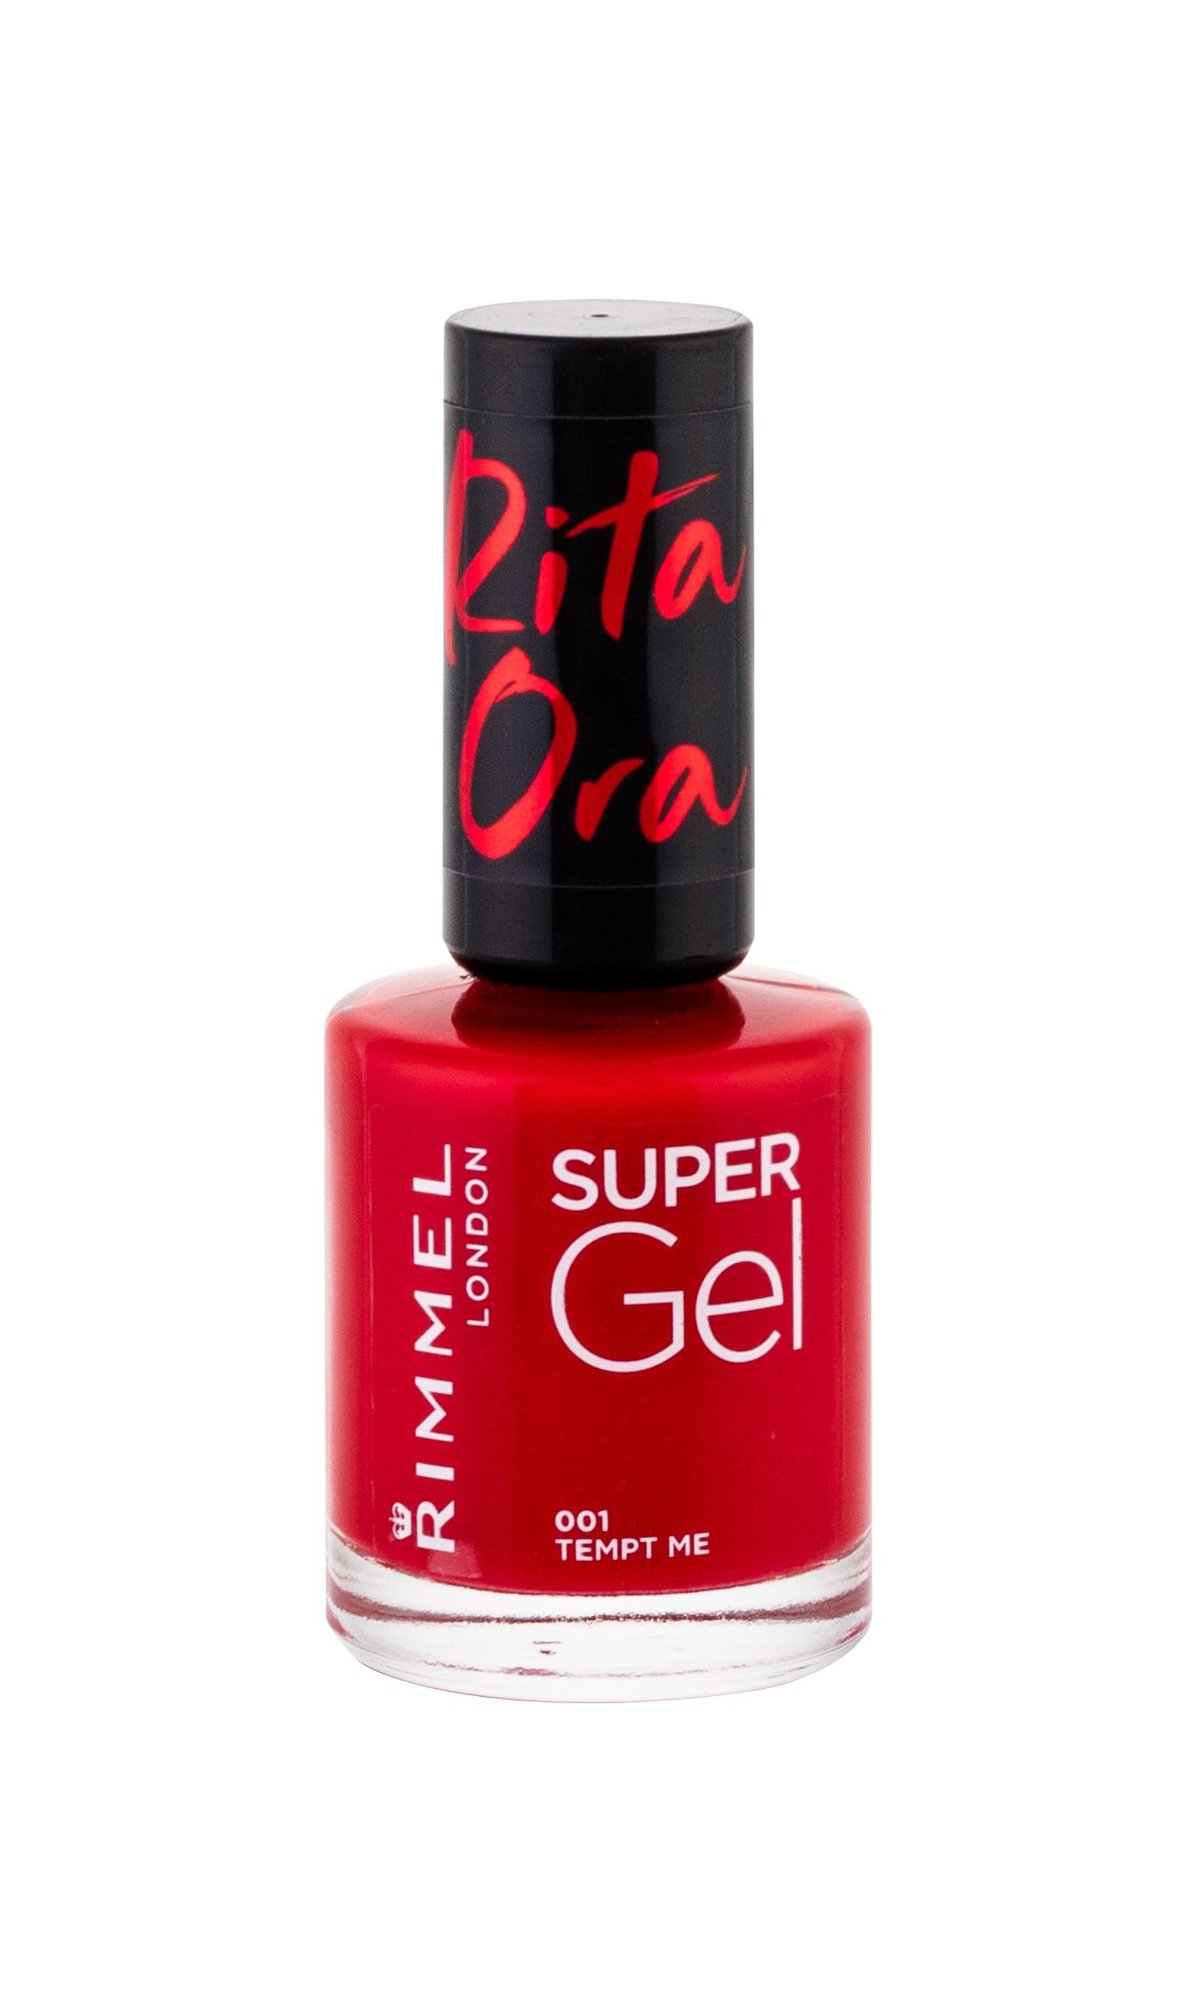 Rimmel London Super Gel By Rita Ora Nail Polish 12ml 001 Tempt Me